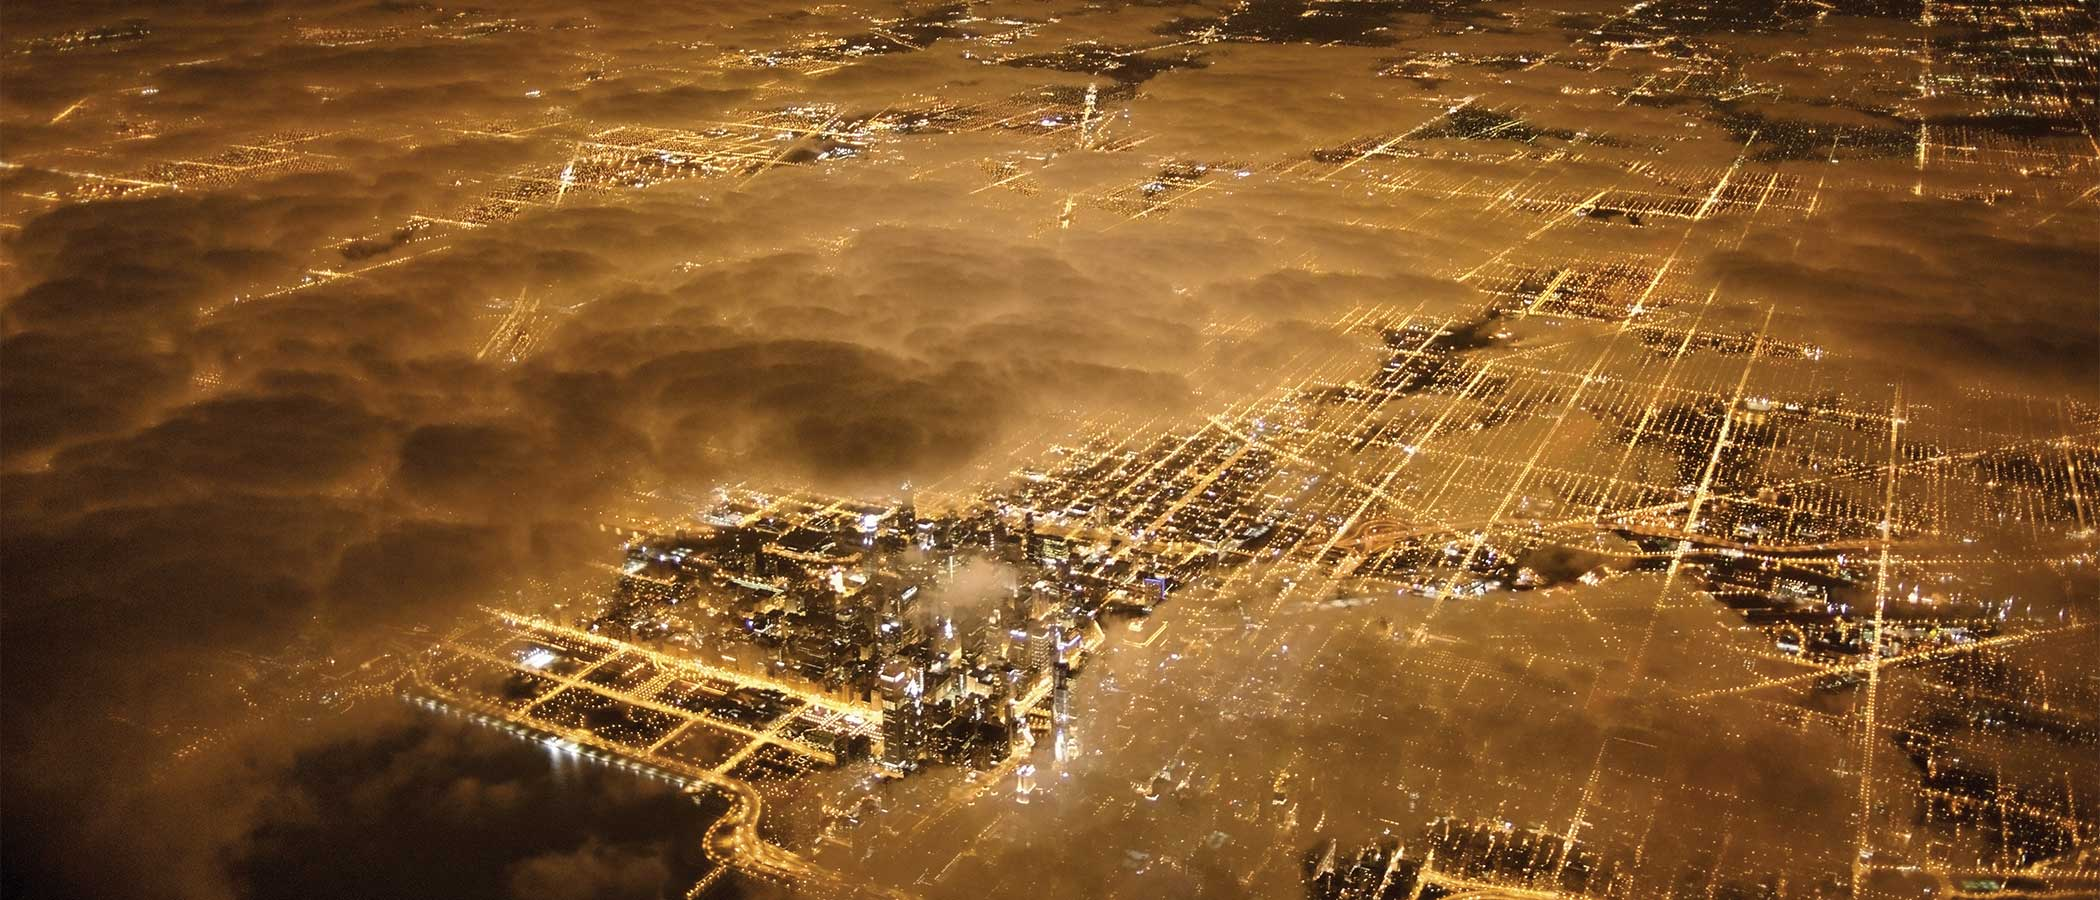 Aerial view of a city at night with glowing lights of buildings and streets.